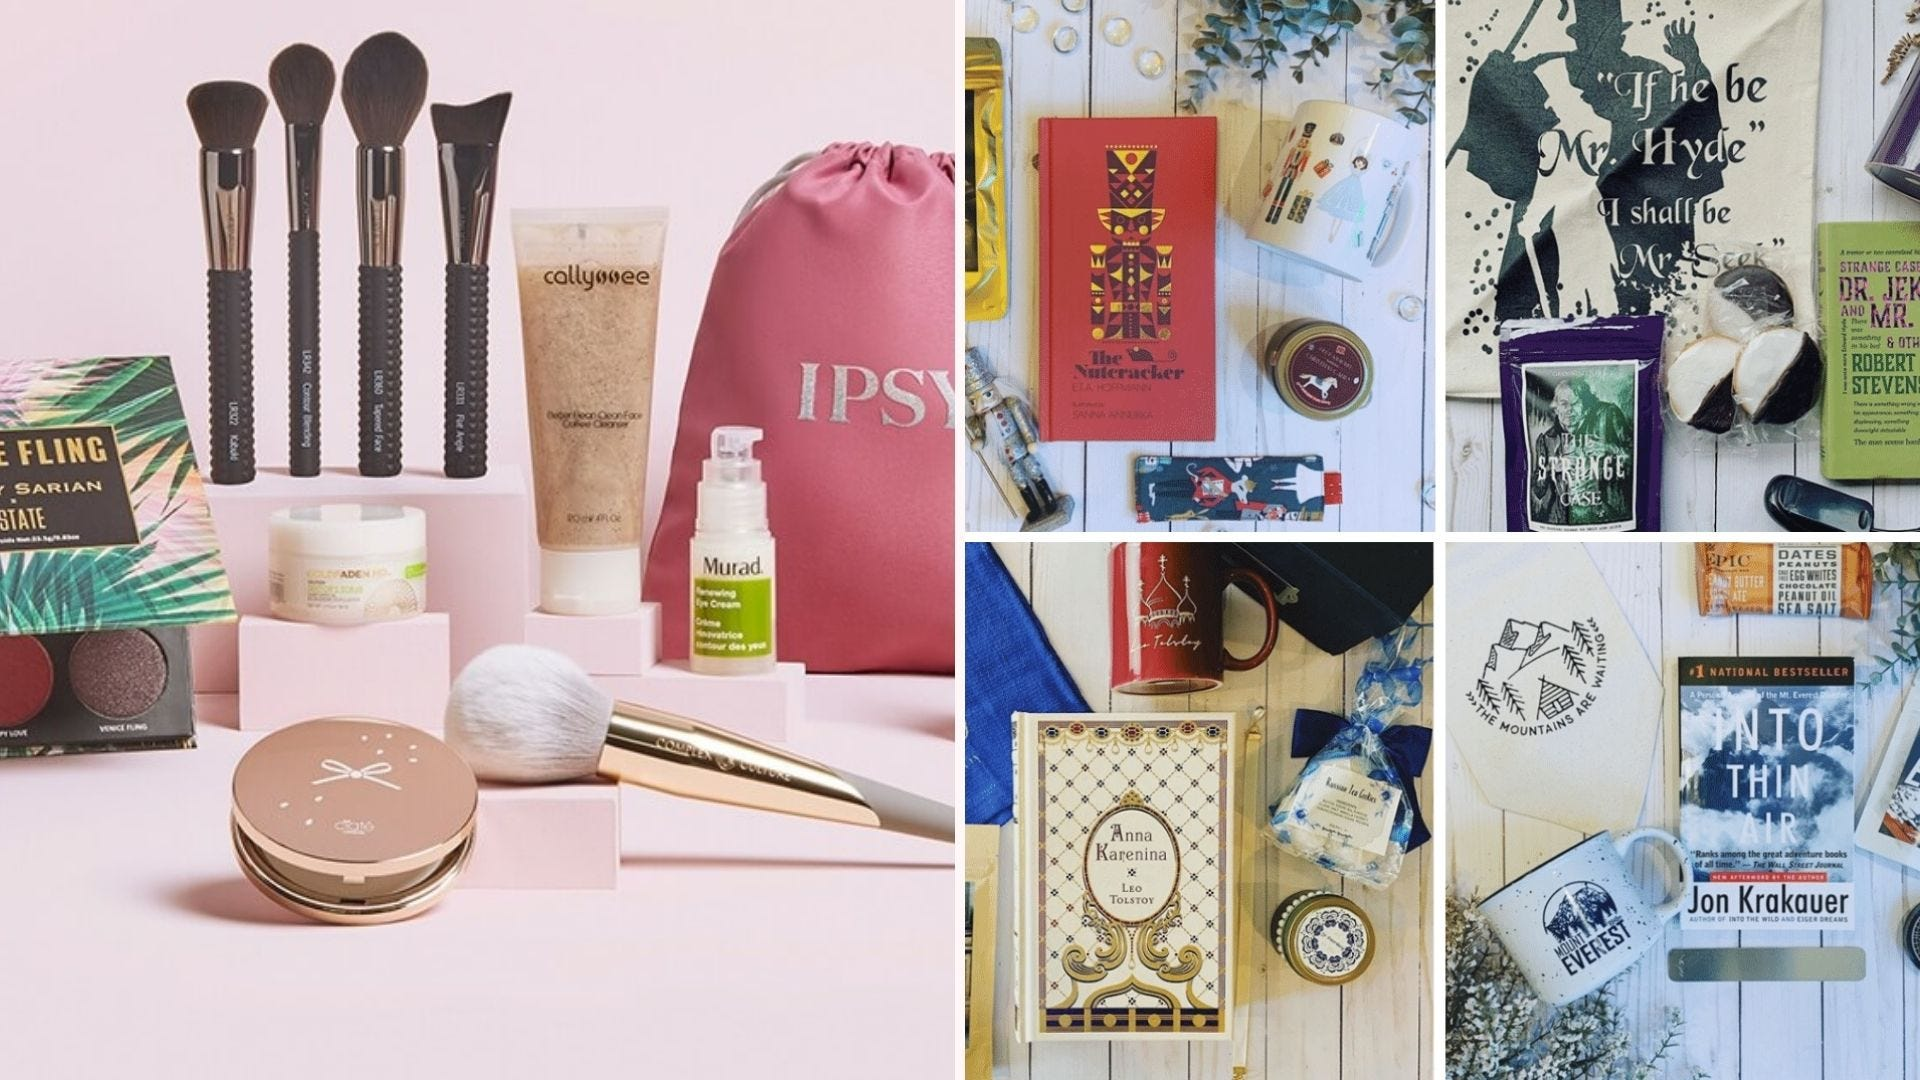 A makeup kit against a pink background; flatlays of book subscription kits